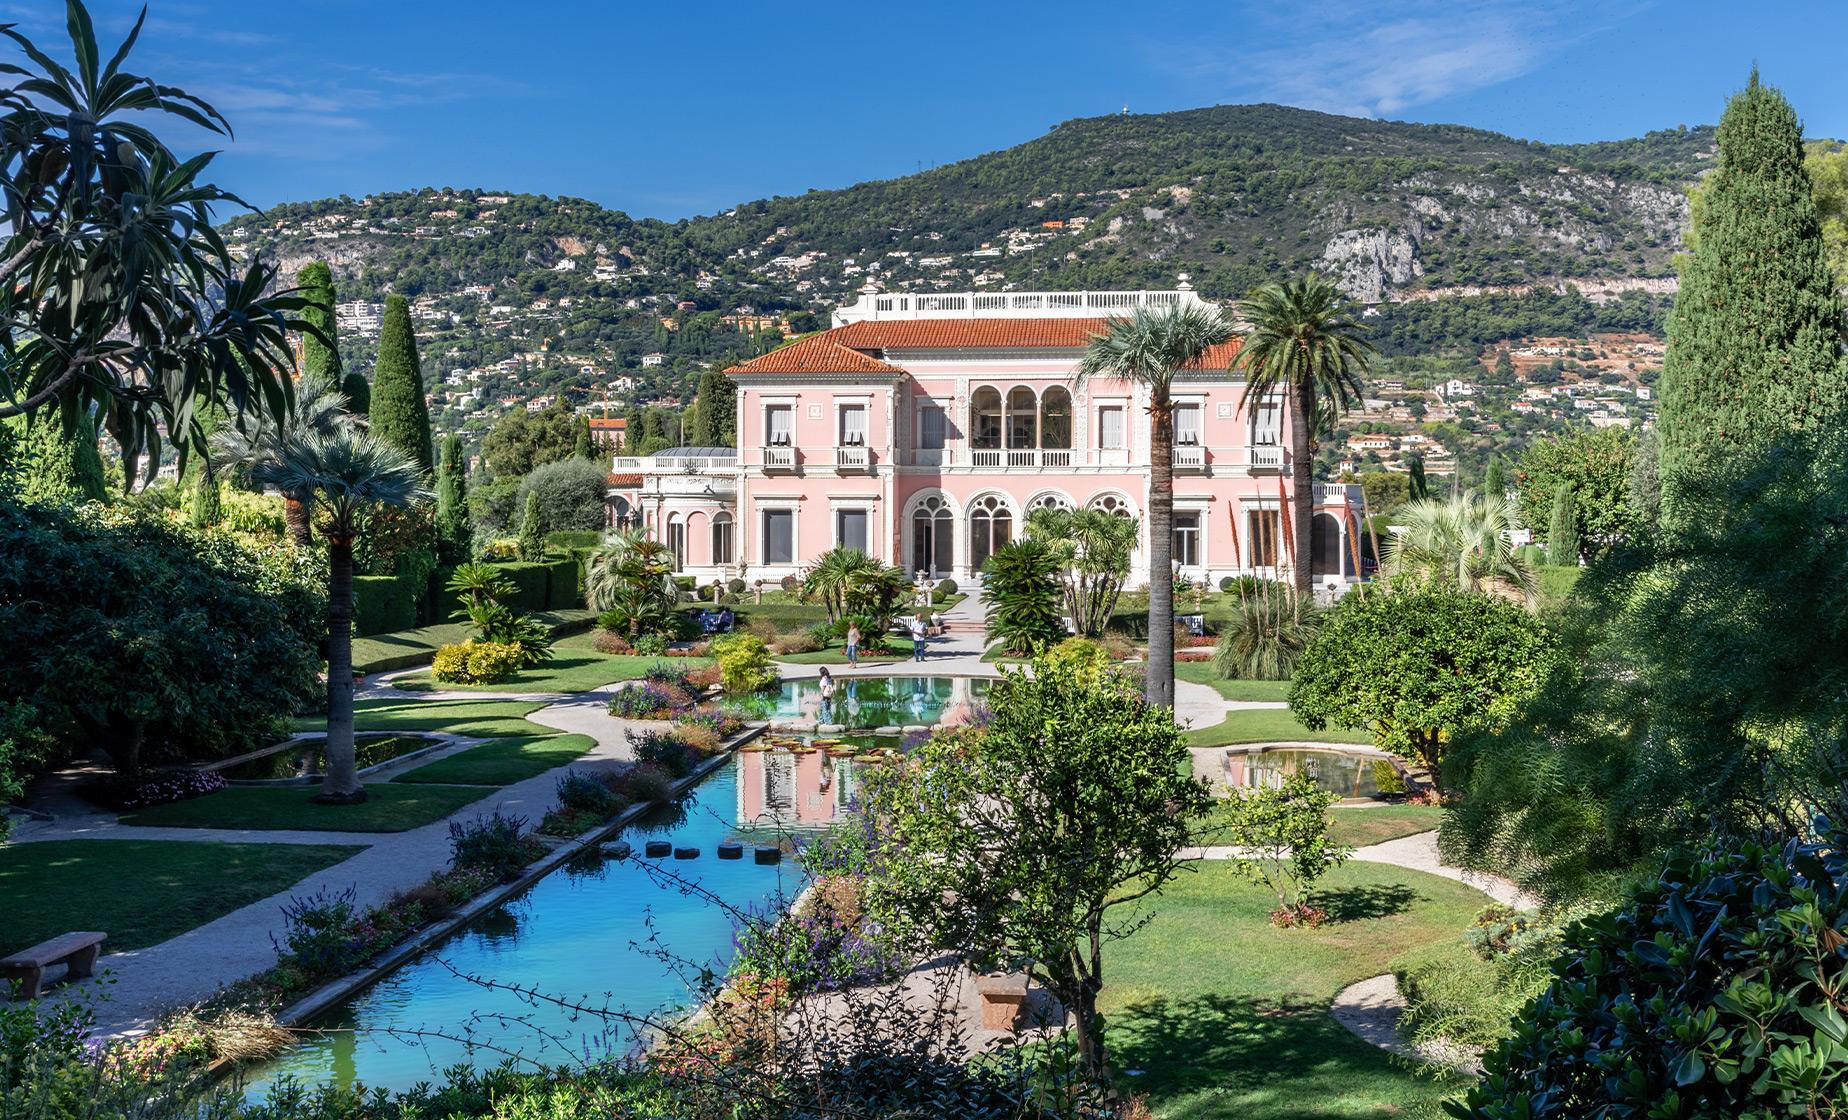 Private Rothschild Foundation and Villa Kerylos Tour in Villefranche (Cap Ferrat)